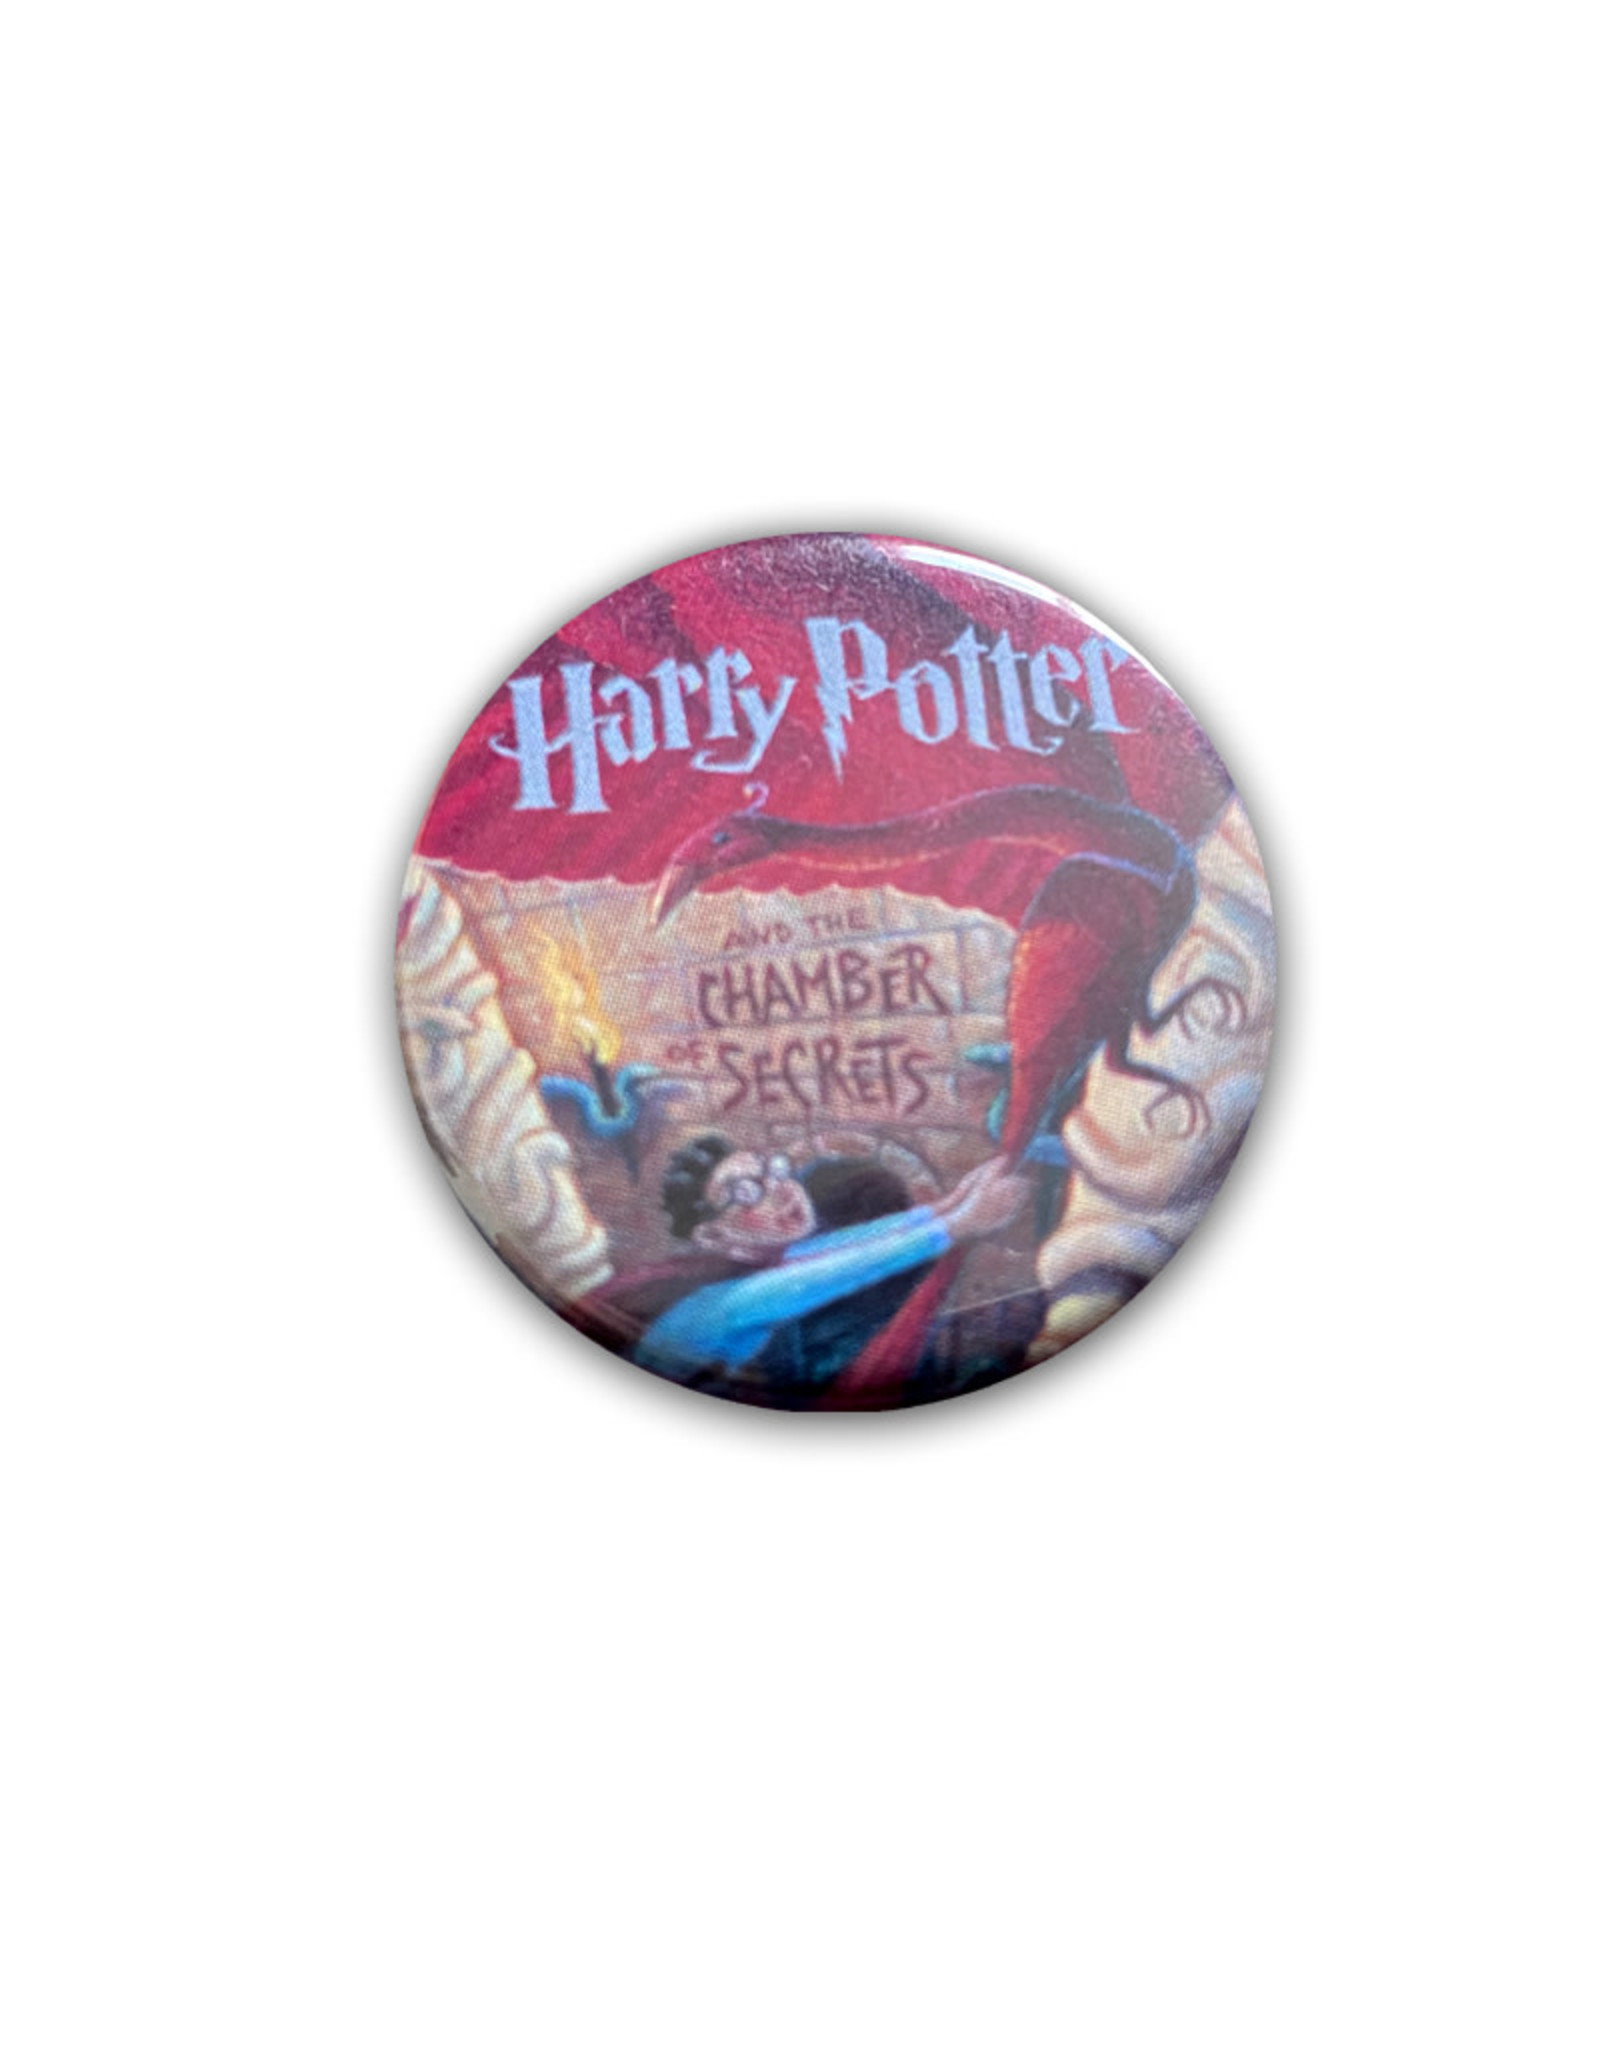 Harry Potter Harry Potter ( Button ) Harry Potter and the Chamber of Secrets